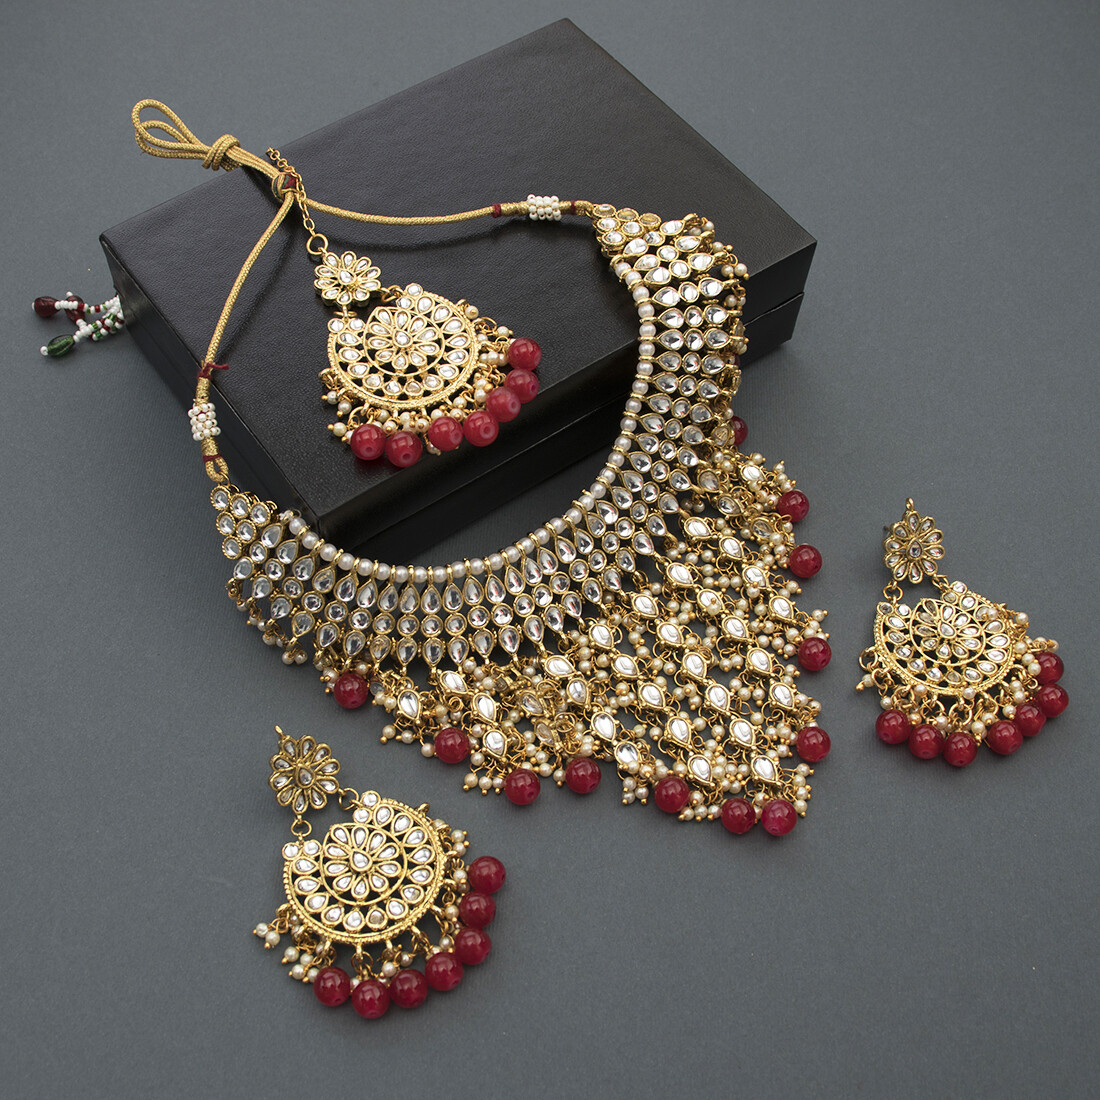 Aheli Traditional Kundan Maang Tikka With Necklace And Earrings Jewelry Set for Women